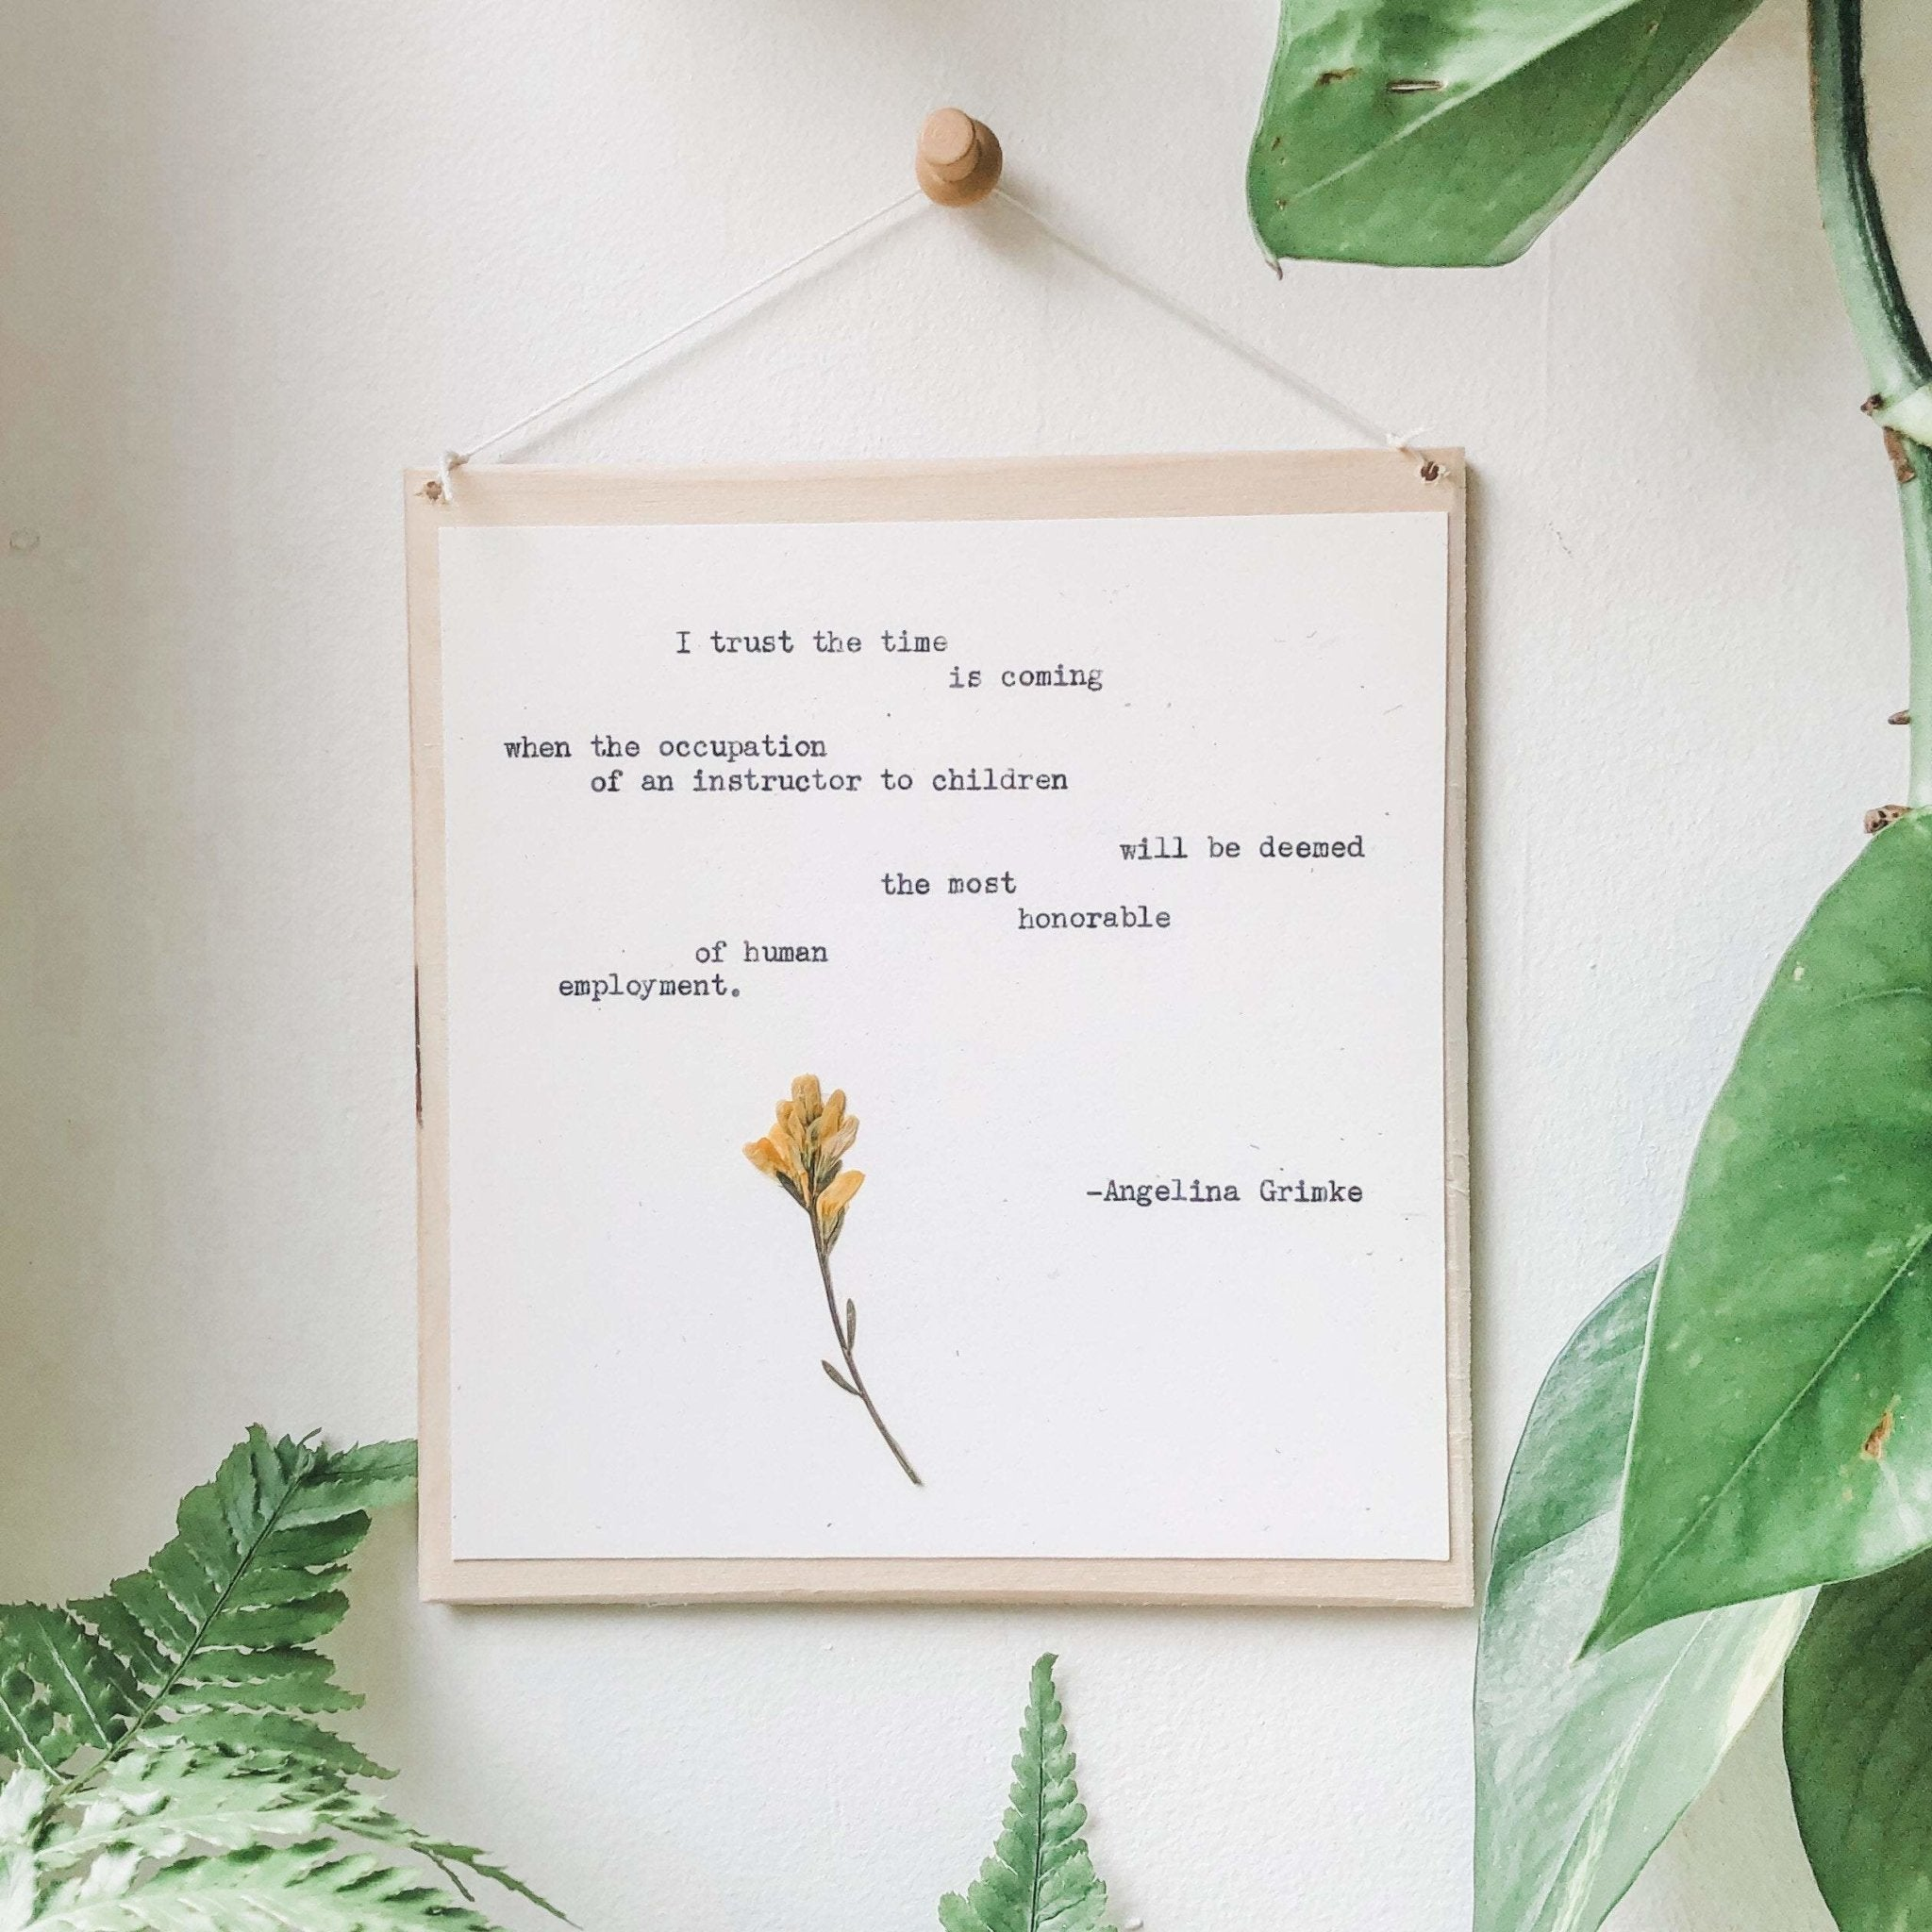 anton chekhov quote typed in typewriter font on white paper, mounted on birch wood and paired with a pressed flower.